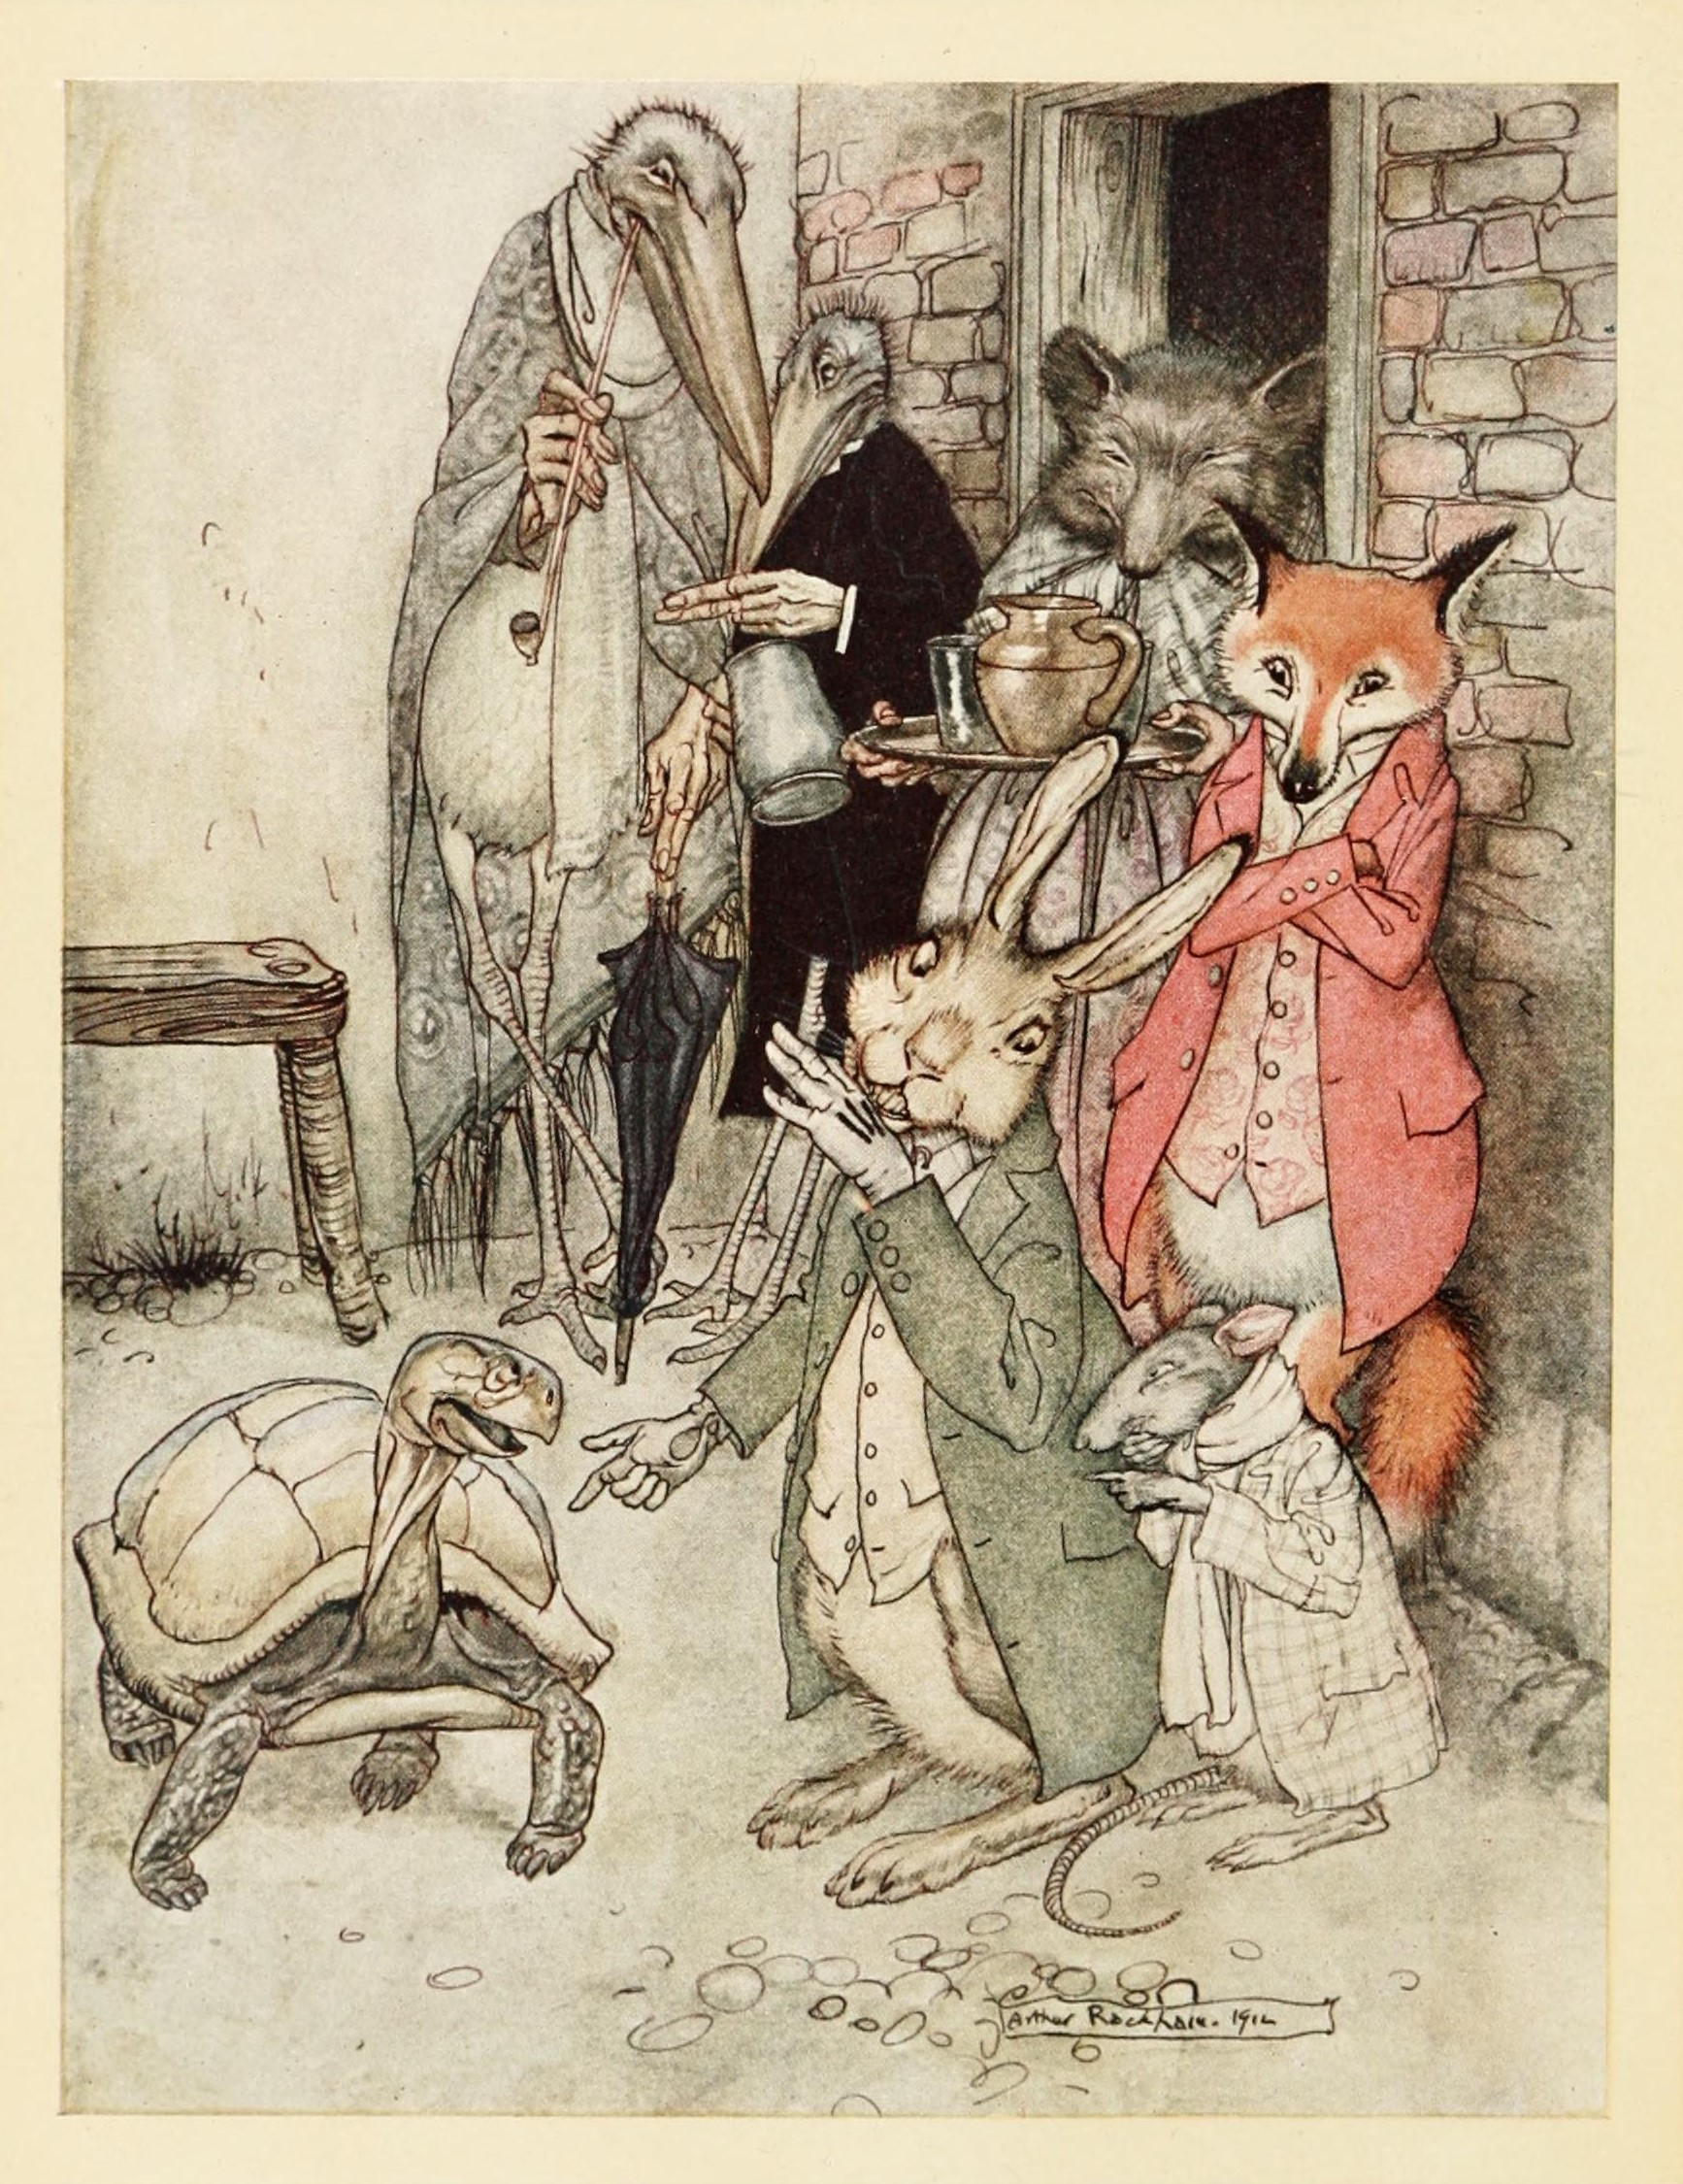 http://upload.wikimedia.org/wikipedia/commons/6/64/Tortoise_and_hare_rackham.jpg